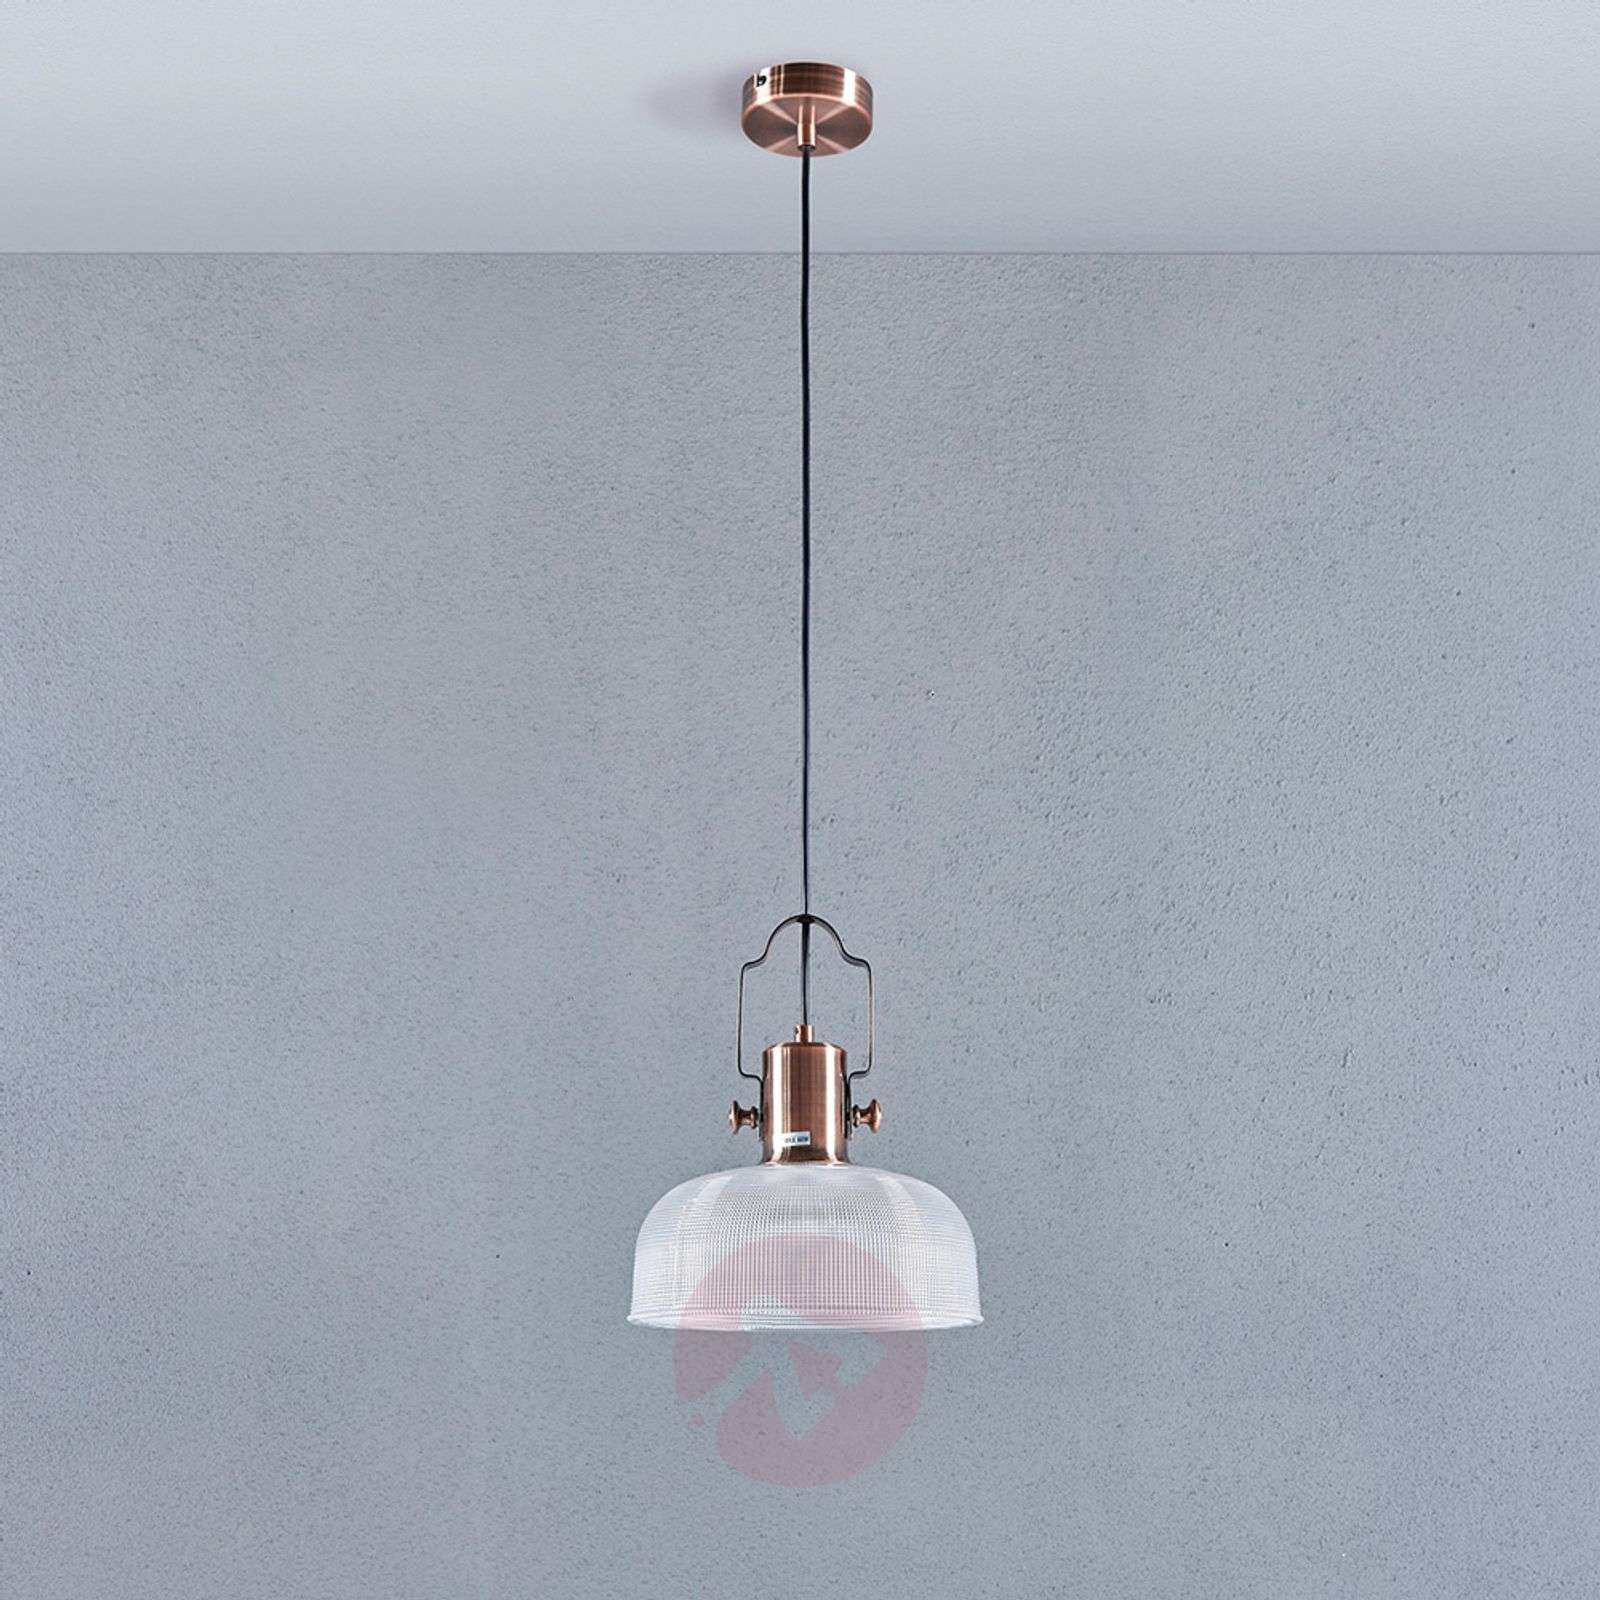 Pendant light Fietje with retro factor | Lights.co.uk